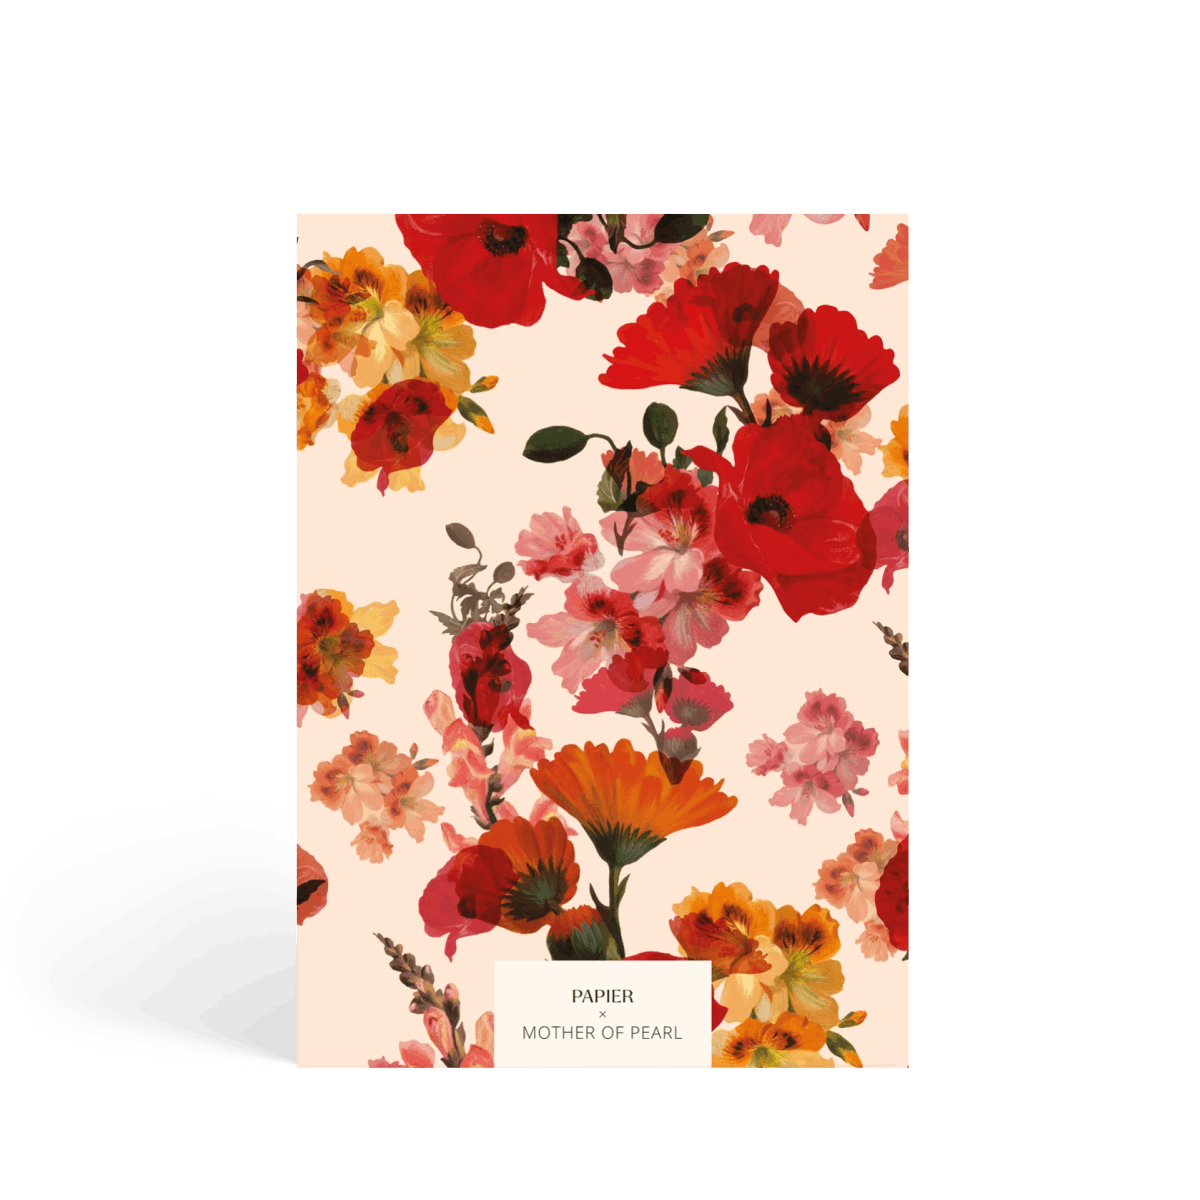 Https%3a%2f%2fwww.papier.com%2fproduct image%2f90414%2f5%2fcordelia floral 22603 back 1570025063.png?ixlib=rb 1.1